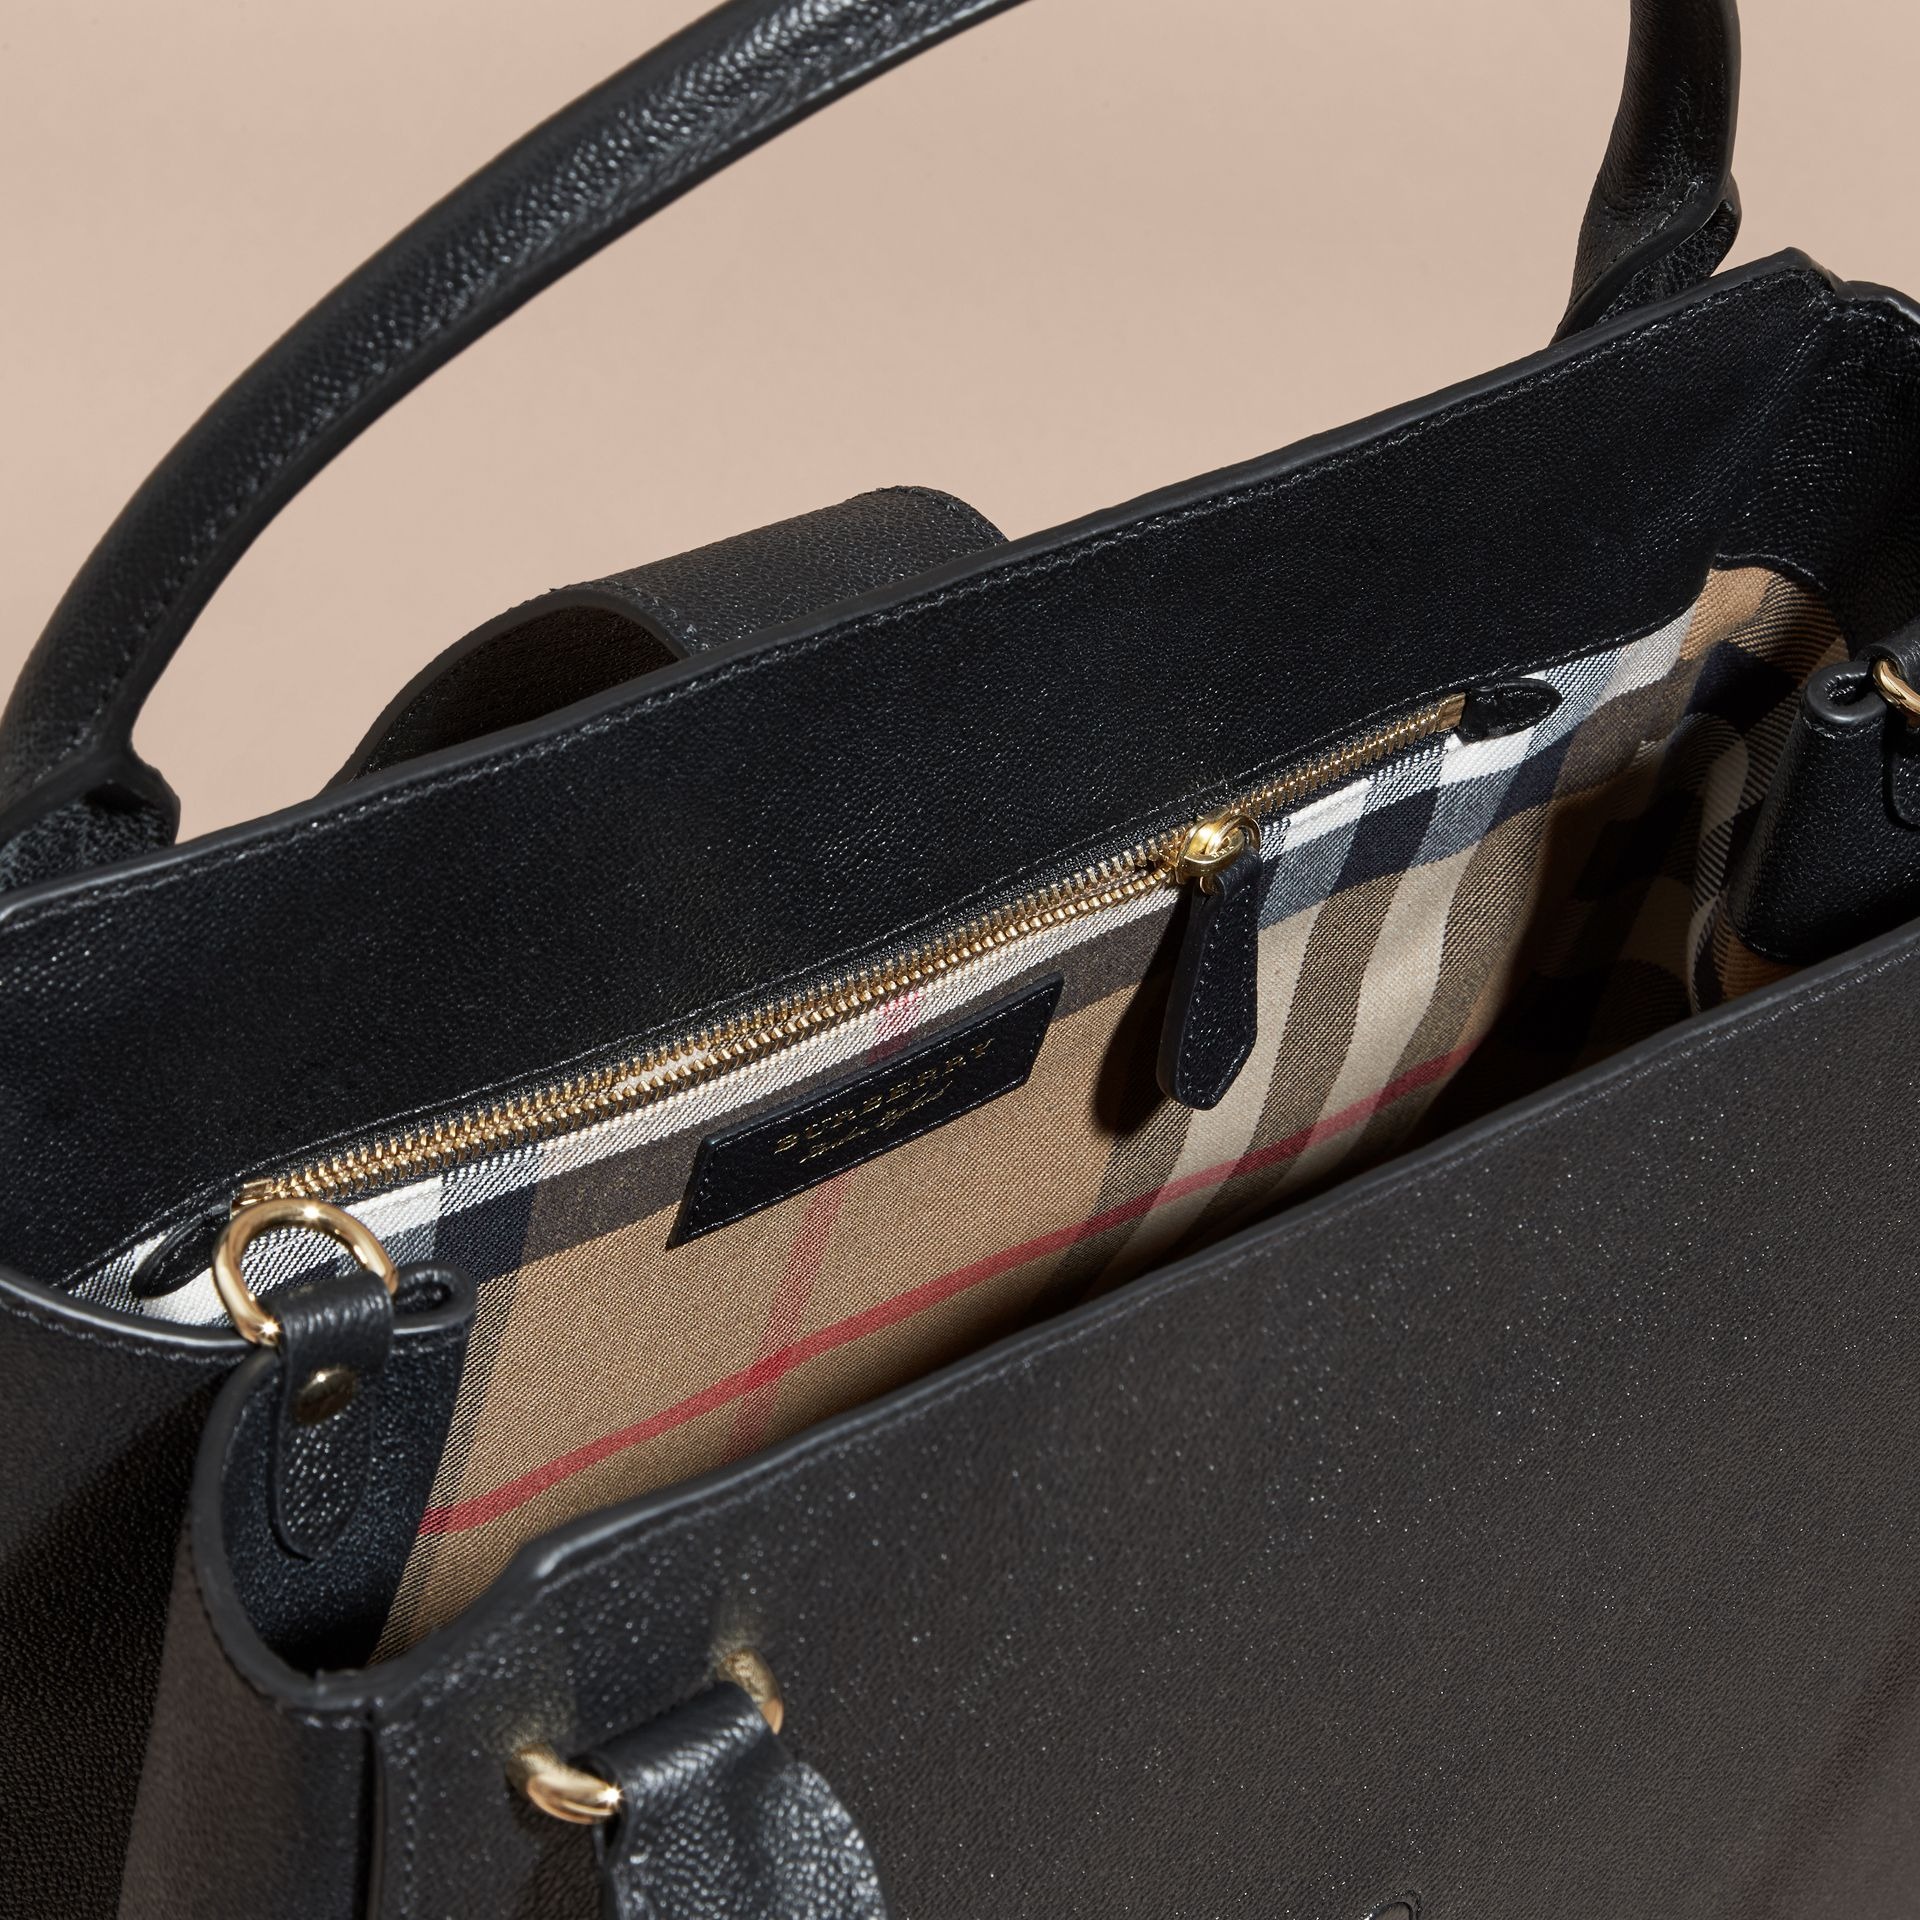 Borsa tote The Buckle grande in pelle a grana (Nero) - Donna | Burberry - immagine della galleria 6